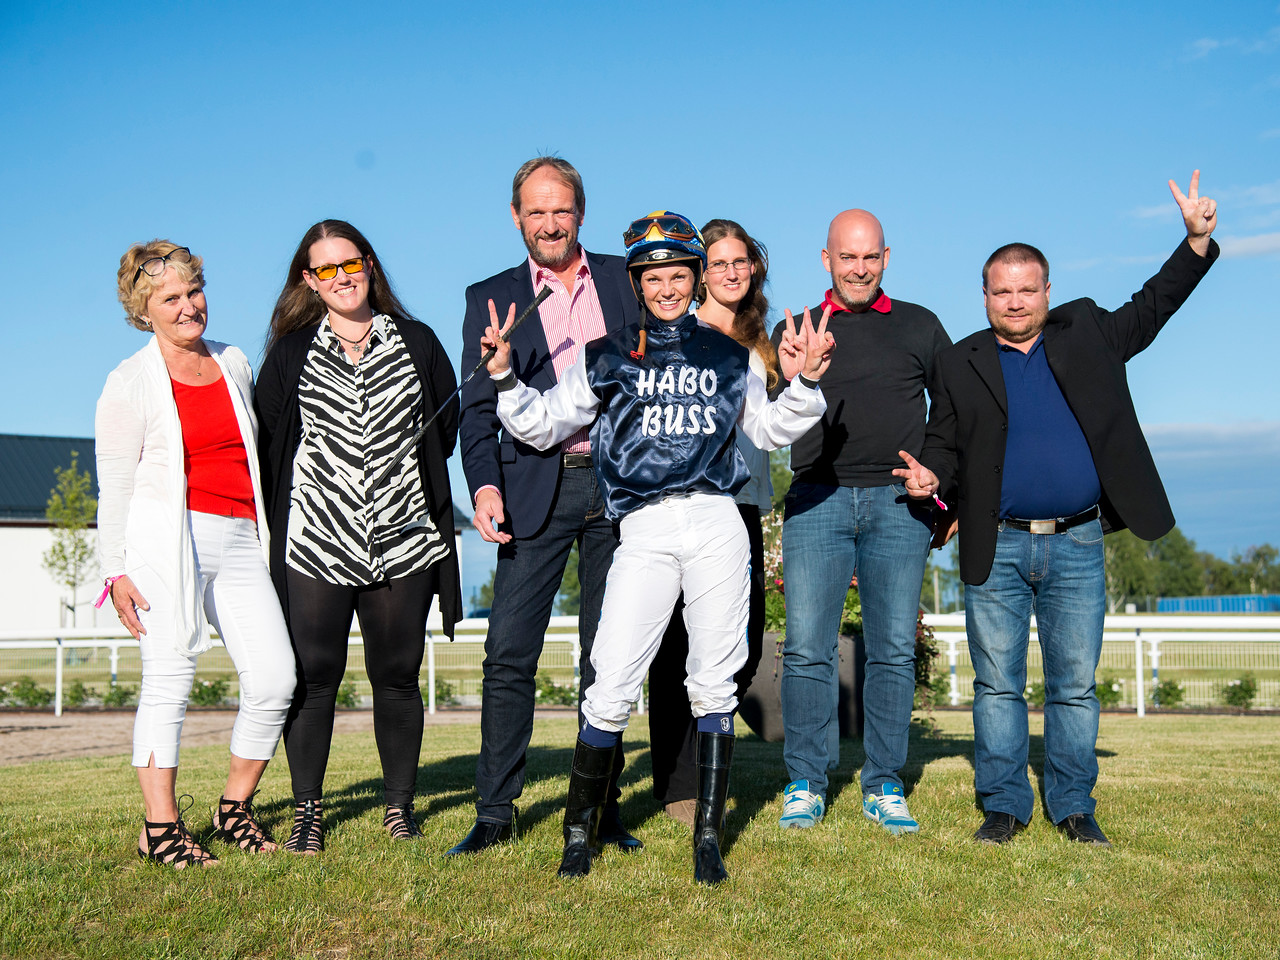 Swedish rider Fanny Olsson and representatives from Håbo Buss, her sponsor in the Lady Jockeys' Thoroughbred World Championship.